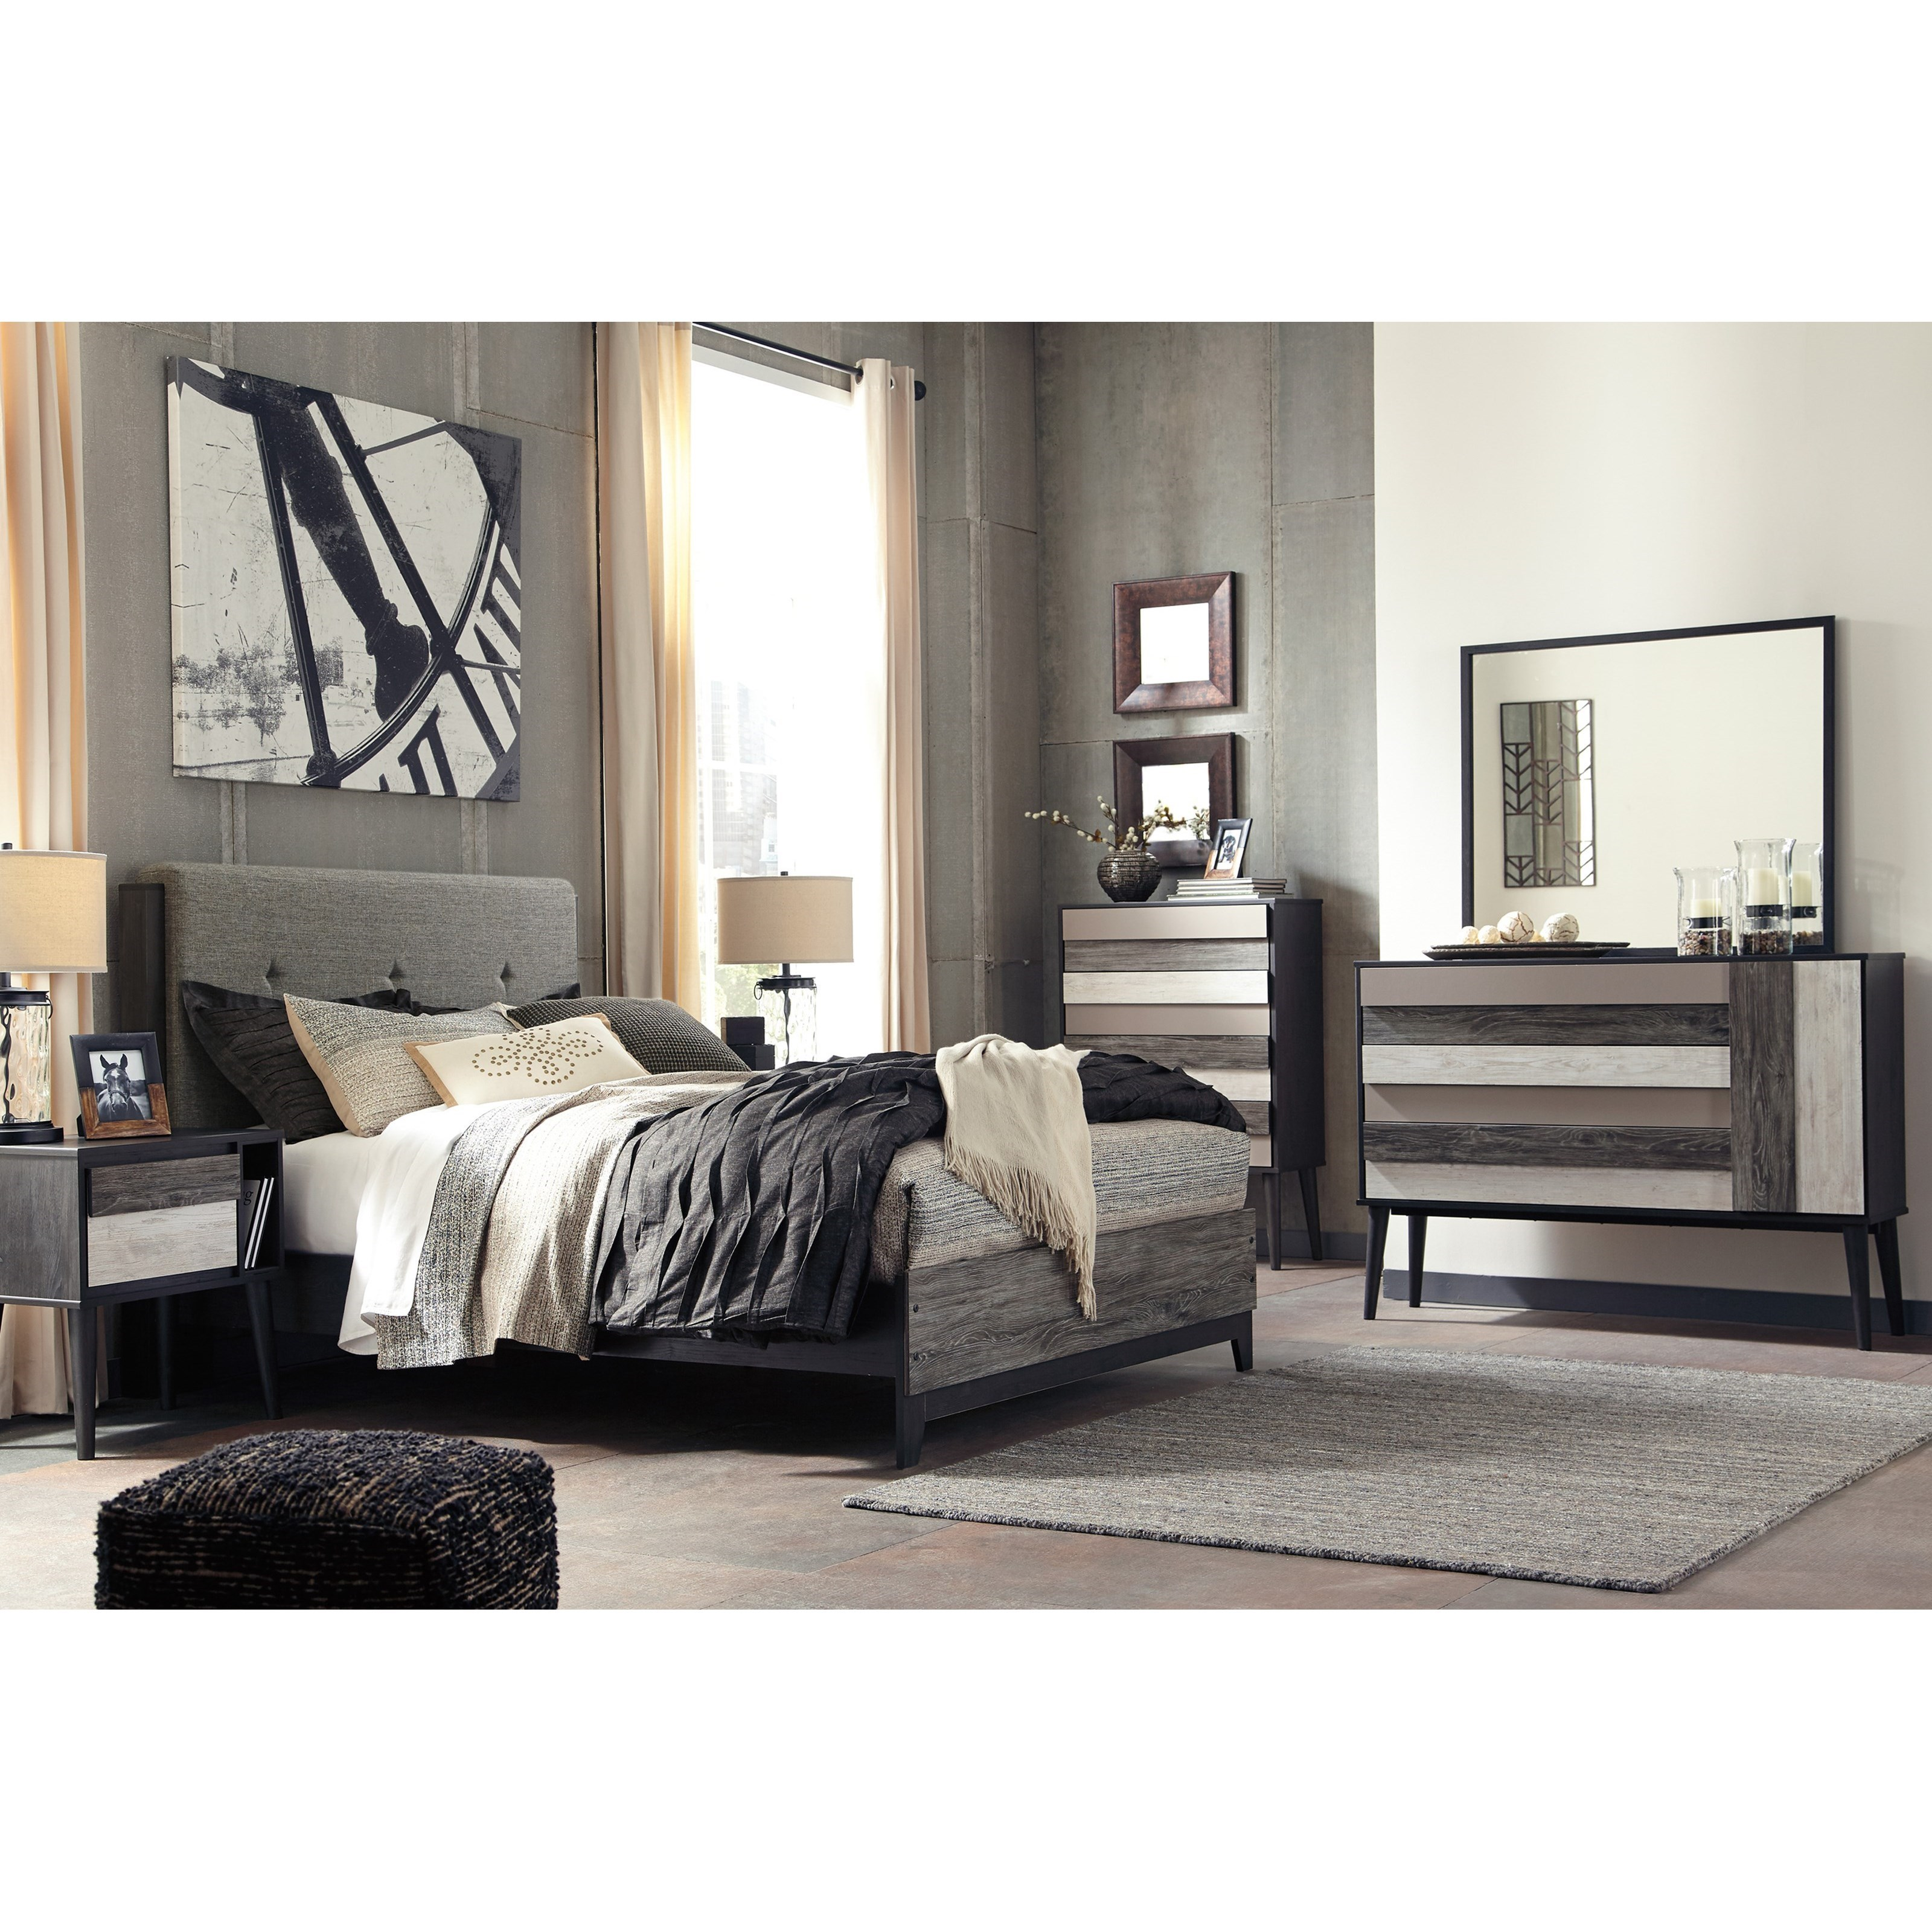 Signature Design by Ashley Micco Queen Bedroom Group - Item Number: B300 Q Bedroom Group 4